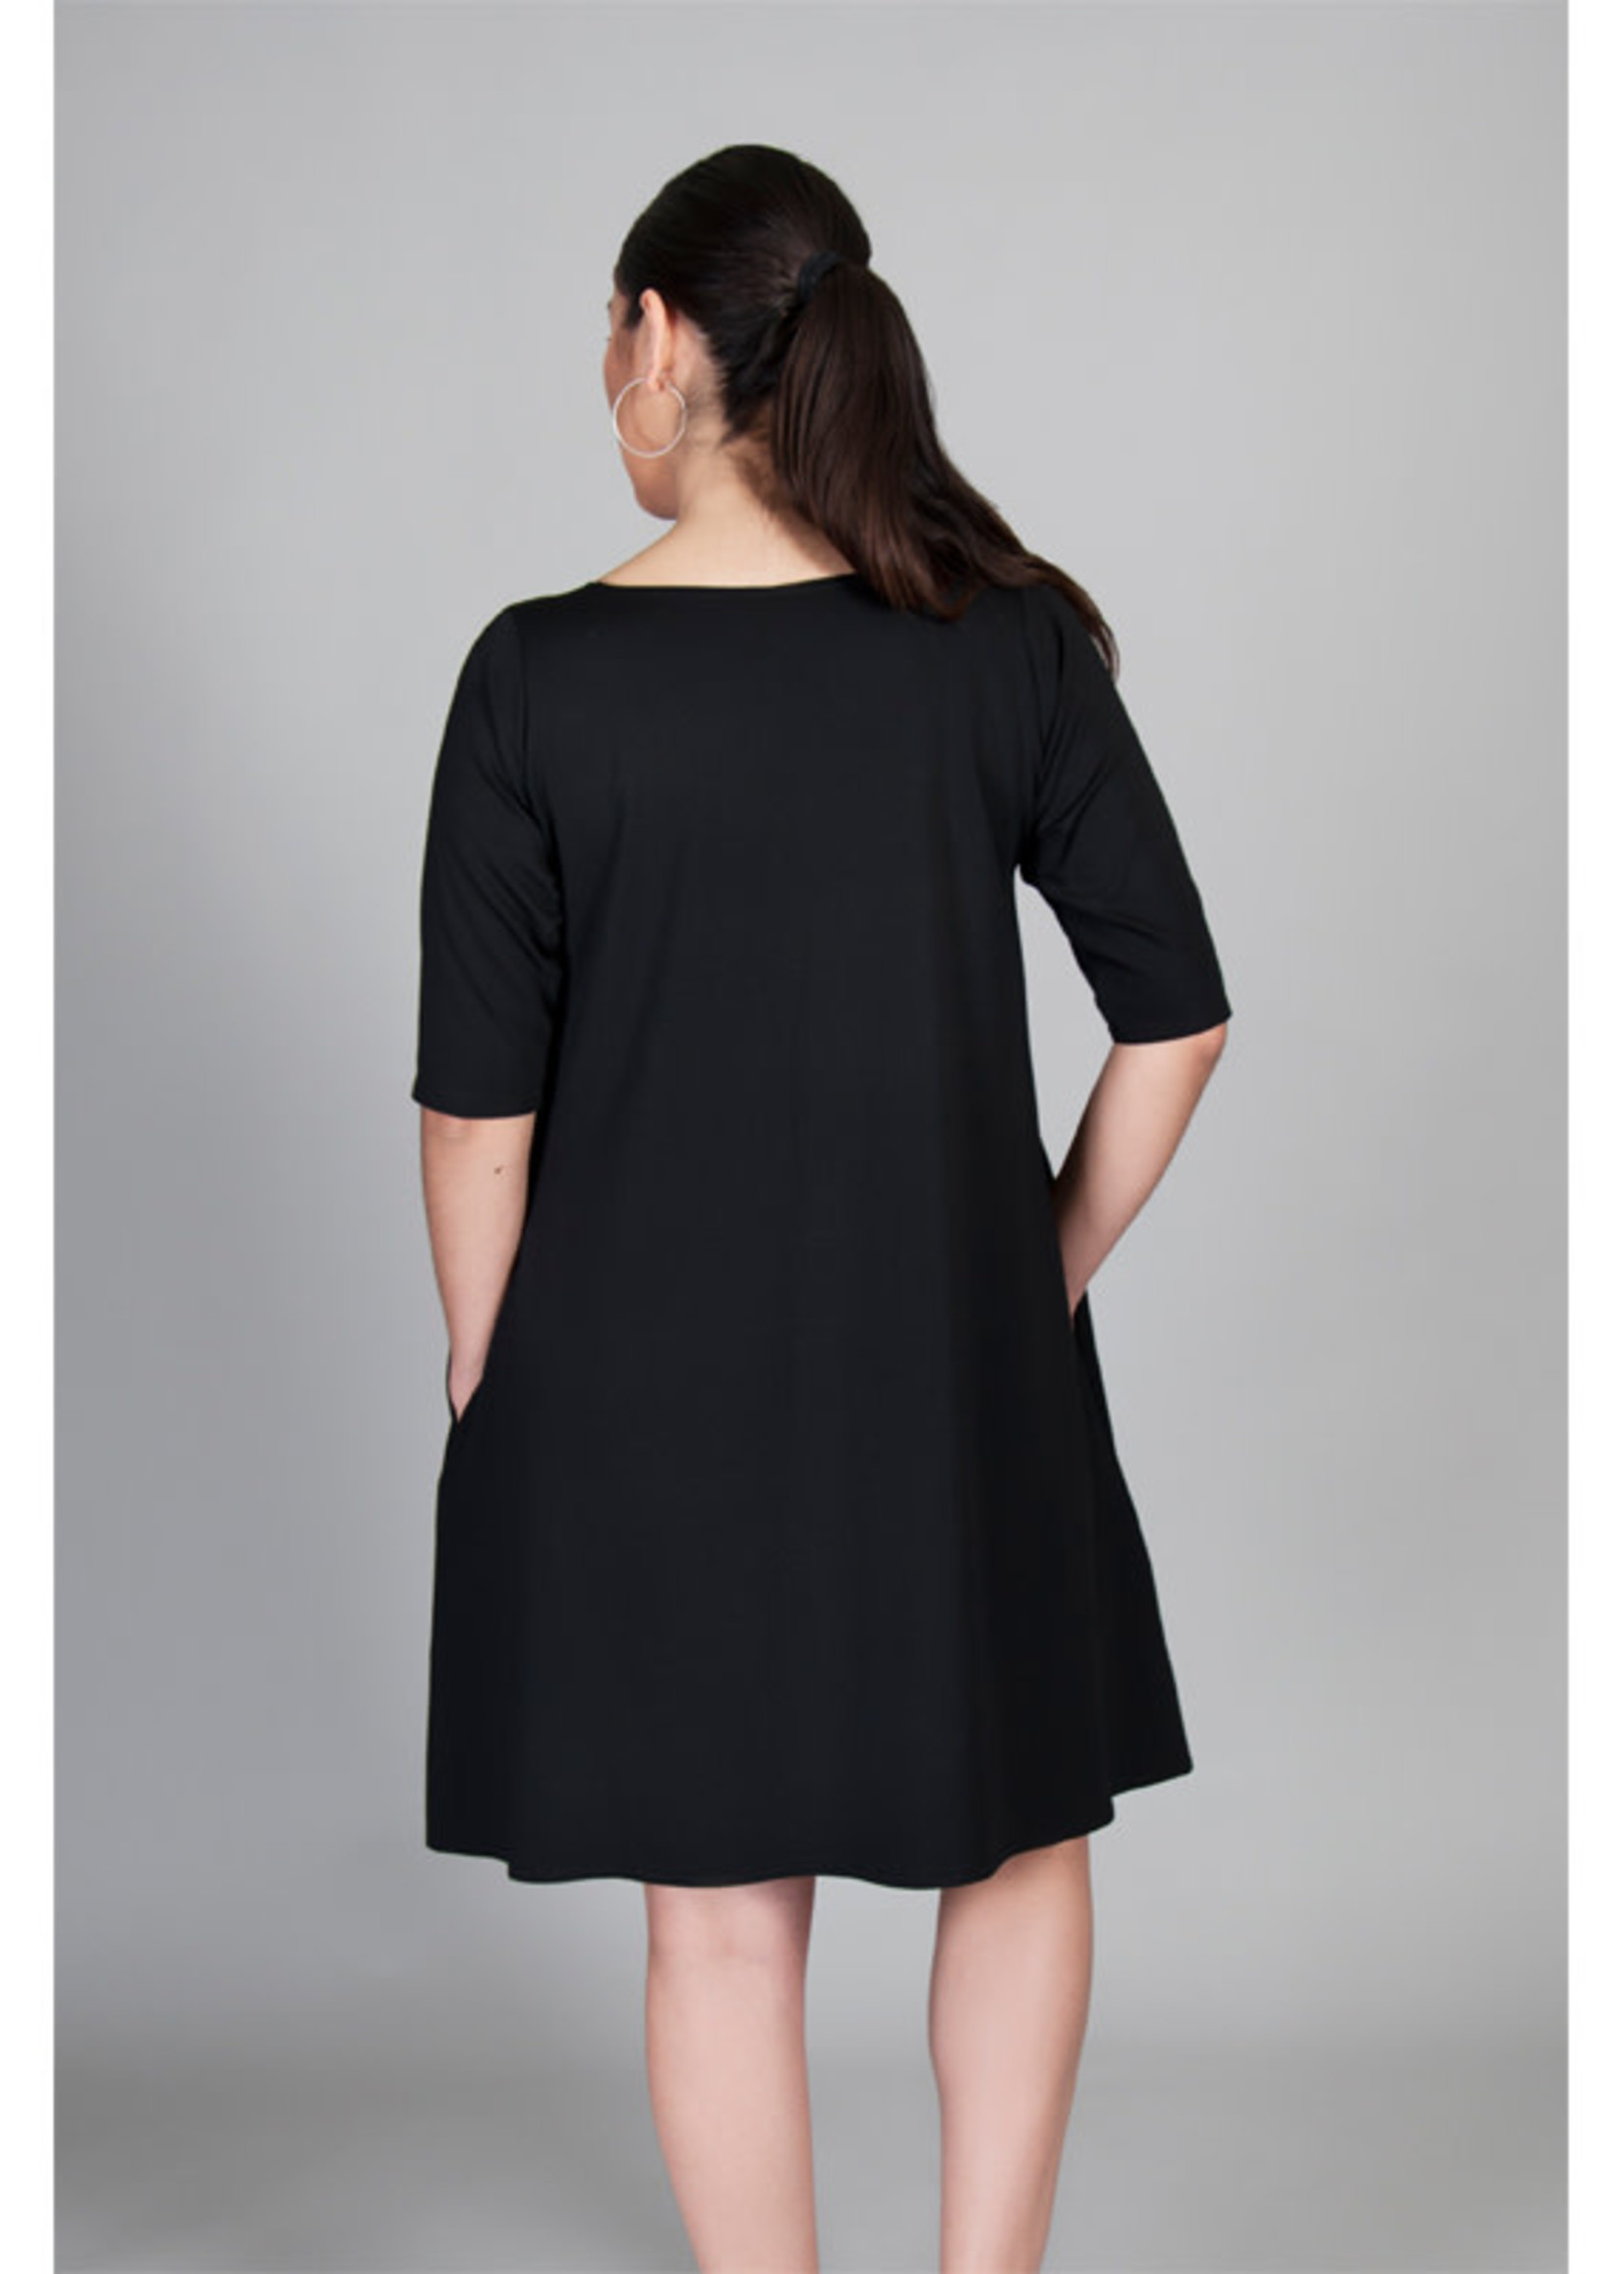 SARAH KUENYEFU VIVI DRESS -MID LENGTH SLEEVES